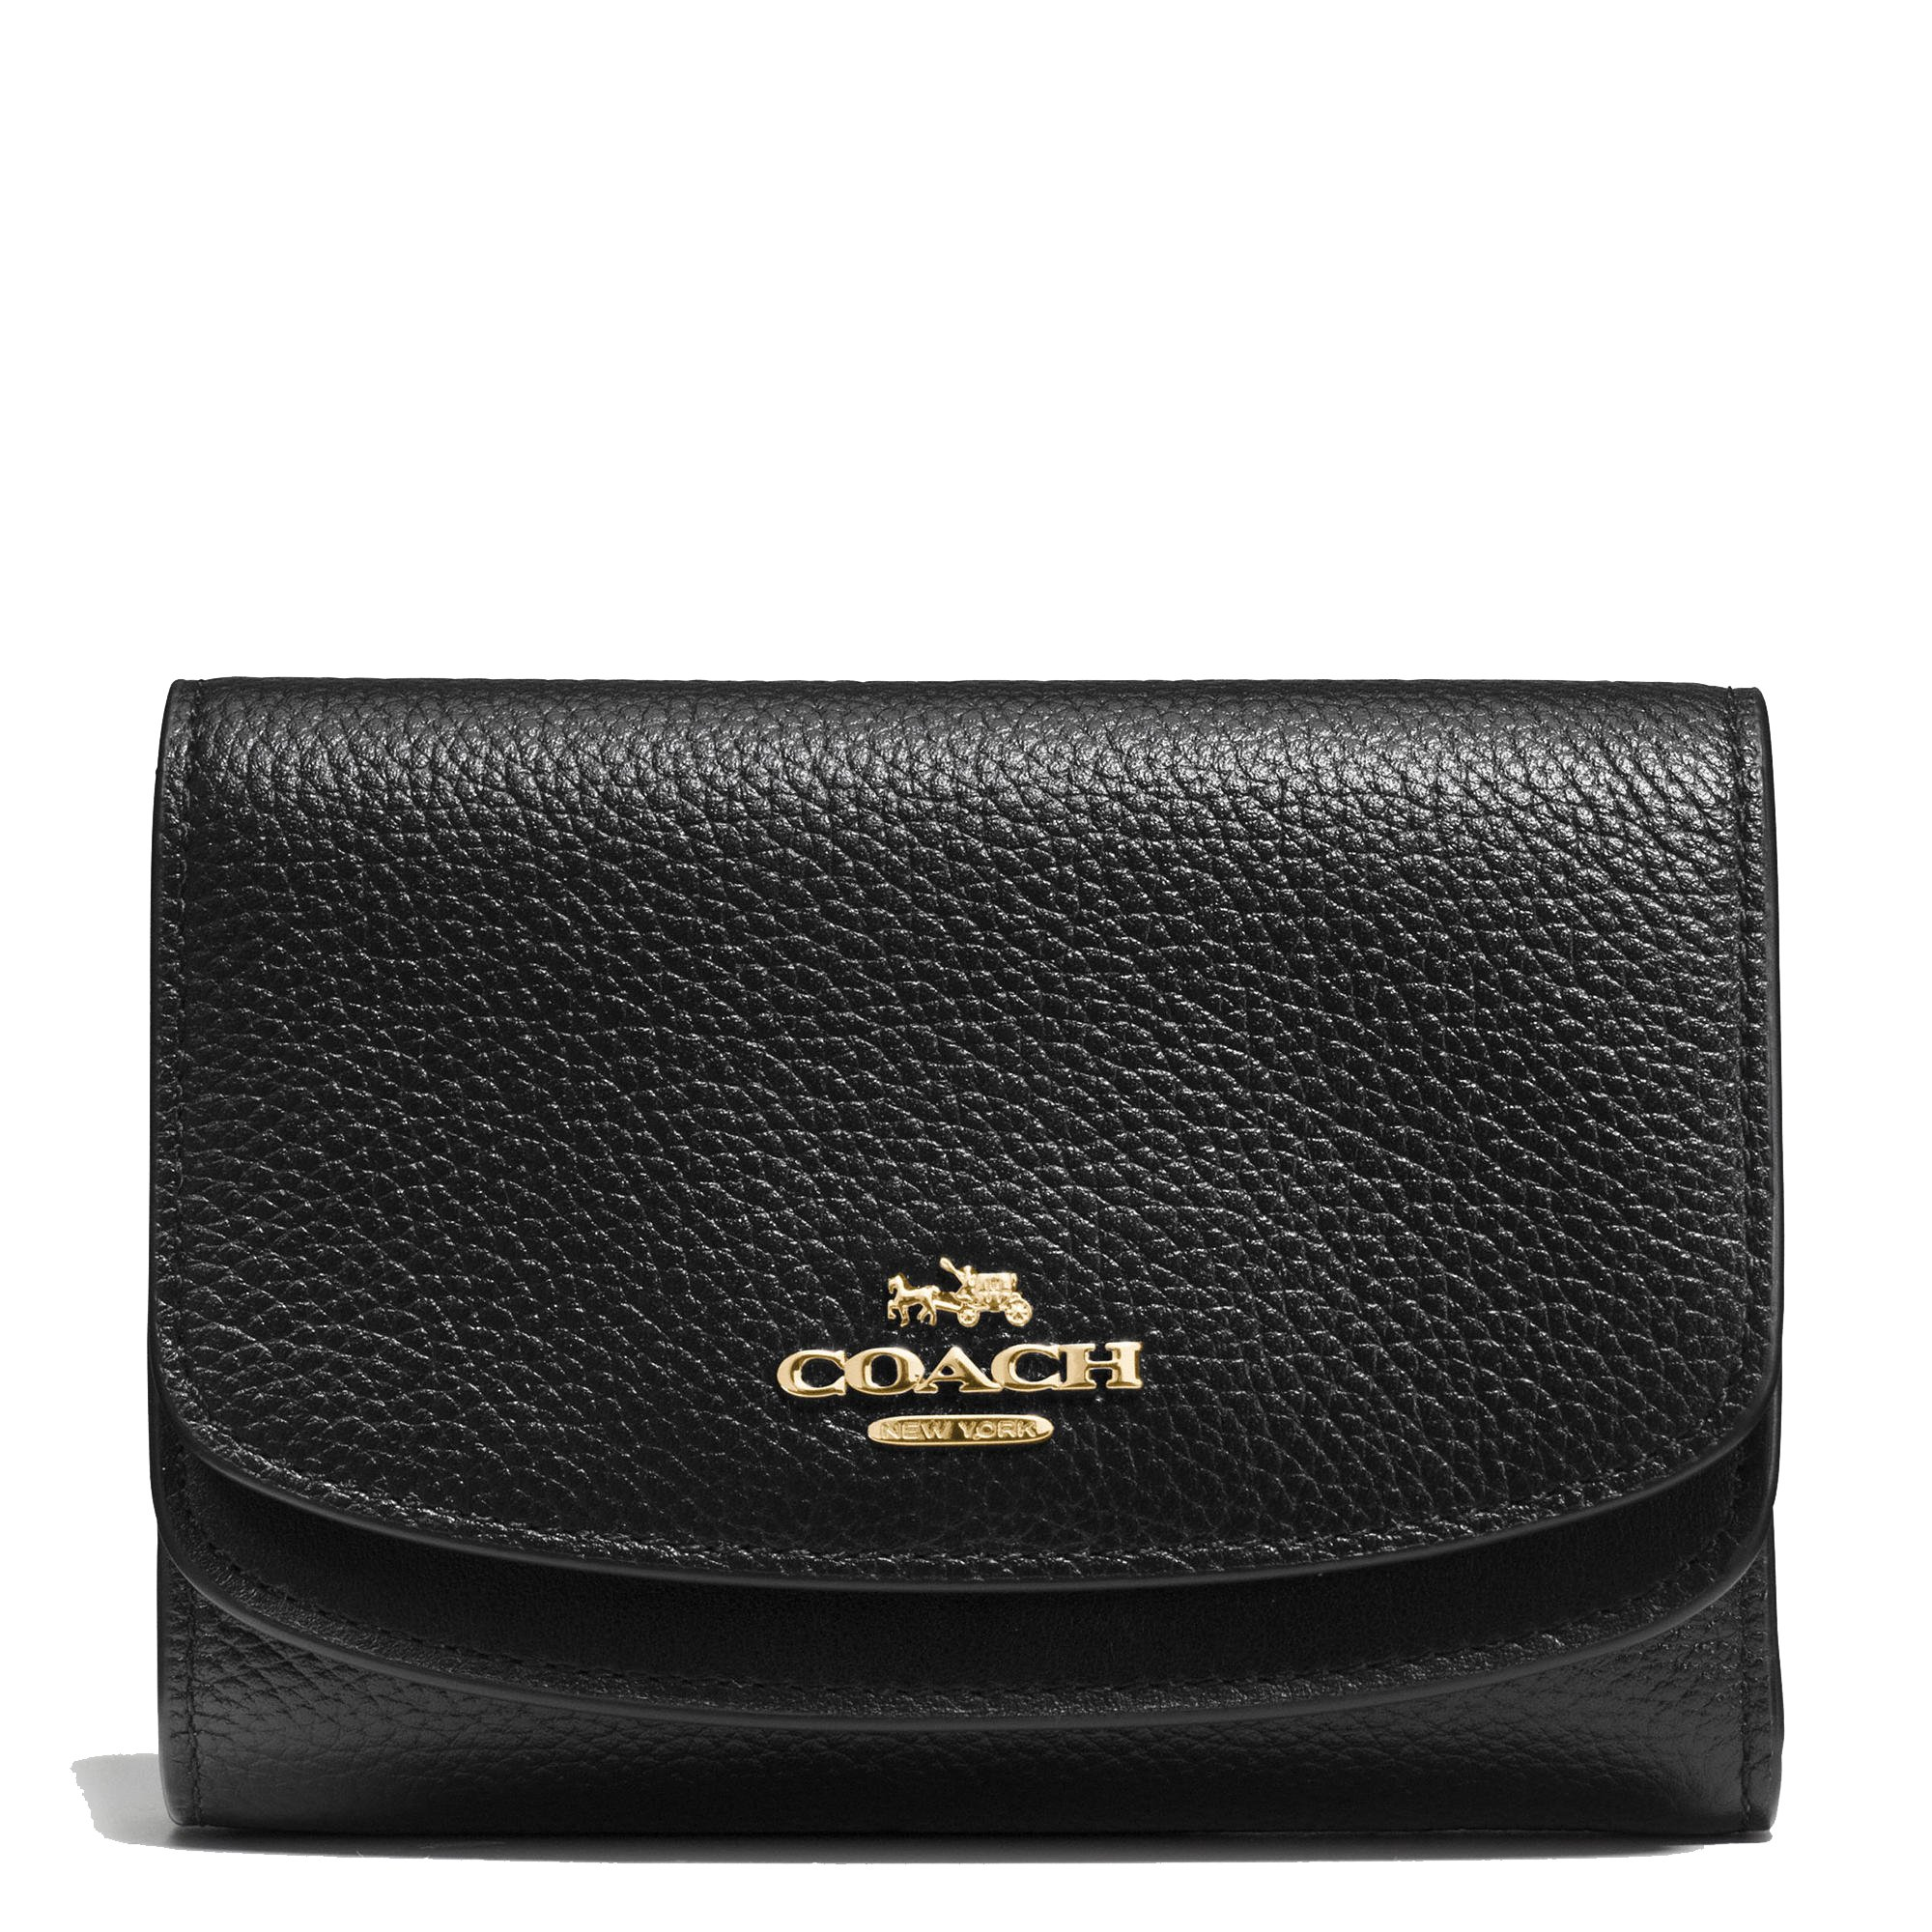 Coach Medium Double Flap Wallet In Pebble Leather Light Gold/Black. Style 55760 LIBLK by Coach